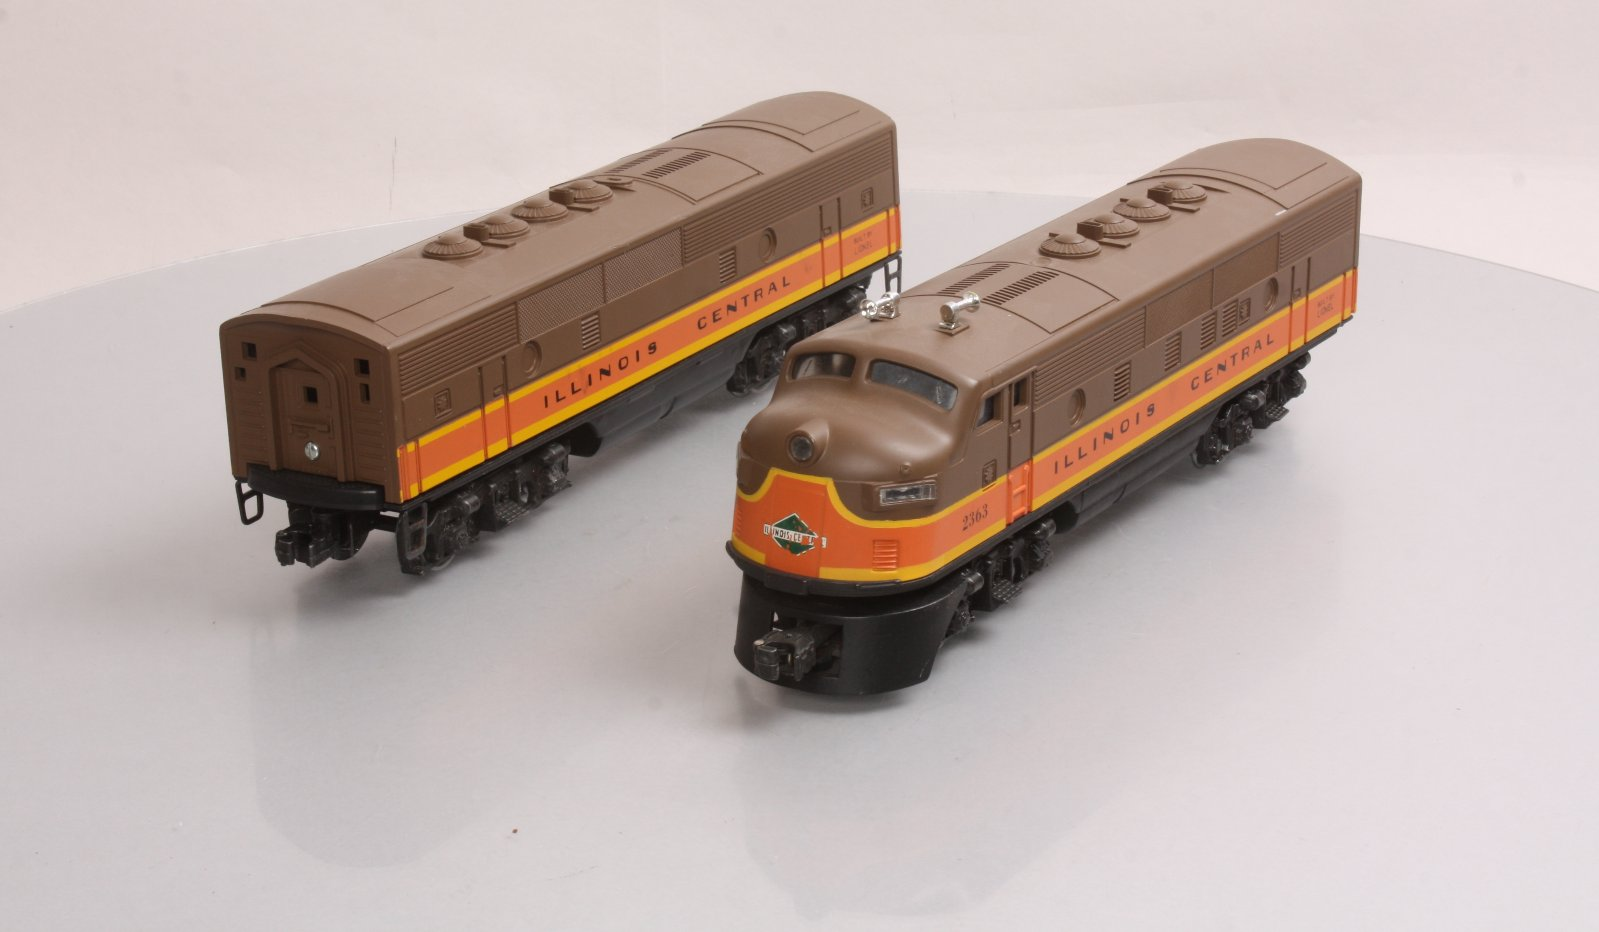 Lionel 2363 Illinois Central AB Diesel Locomotive Set - Restored  023922623638 Lionel 2363